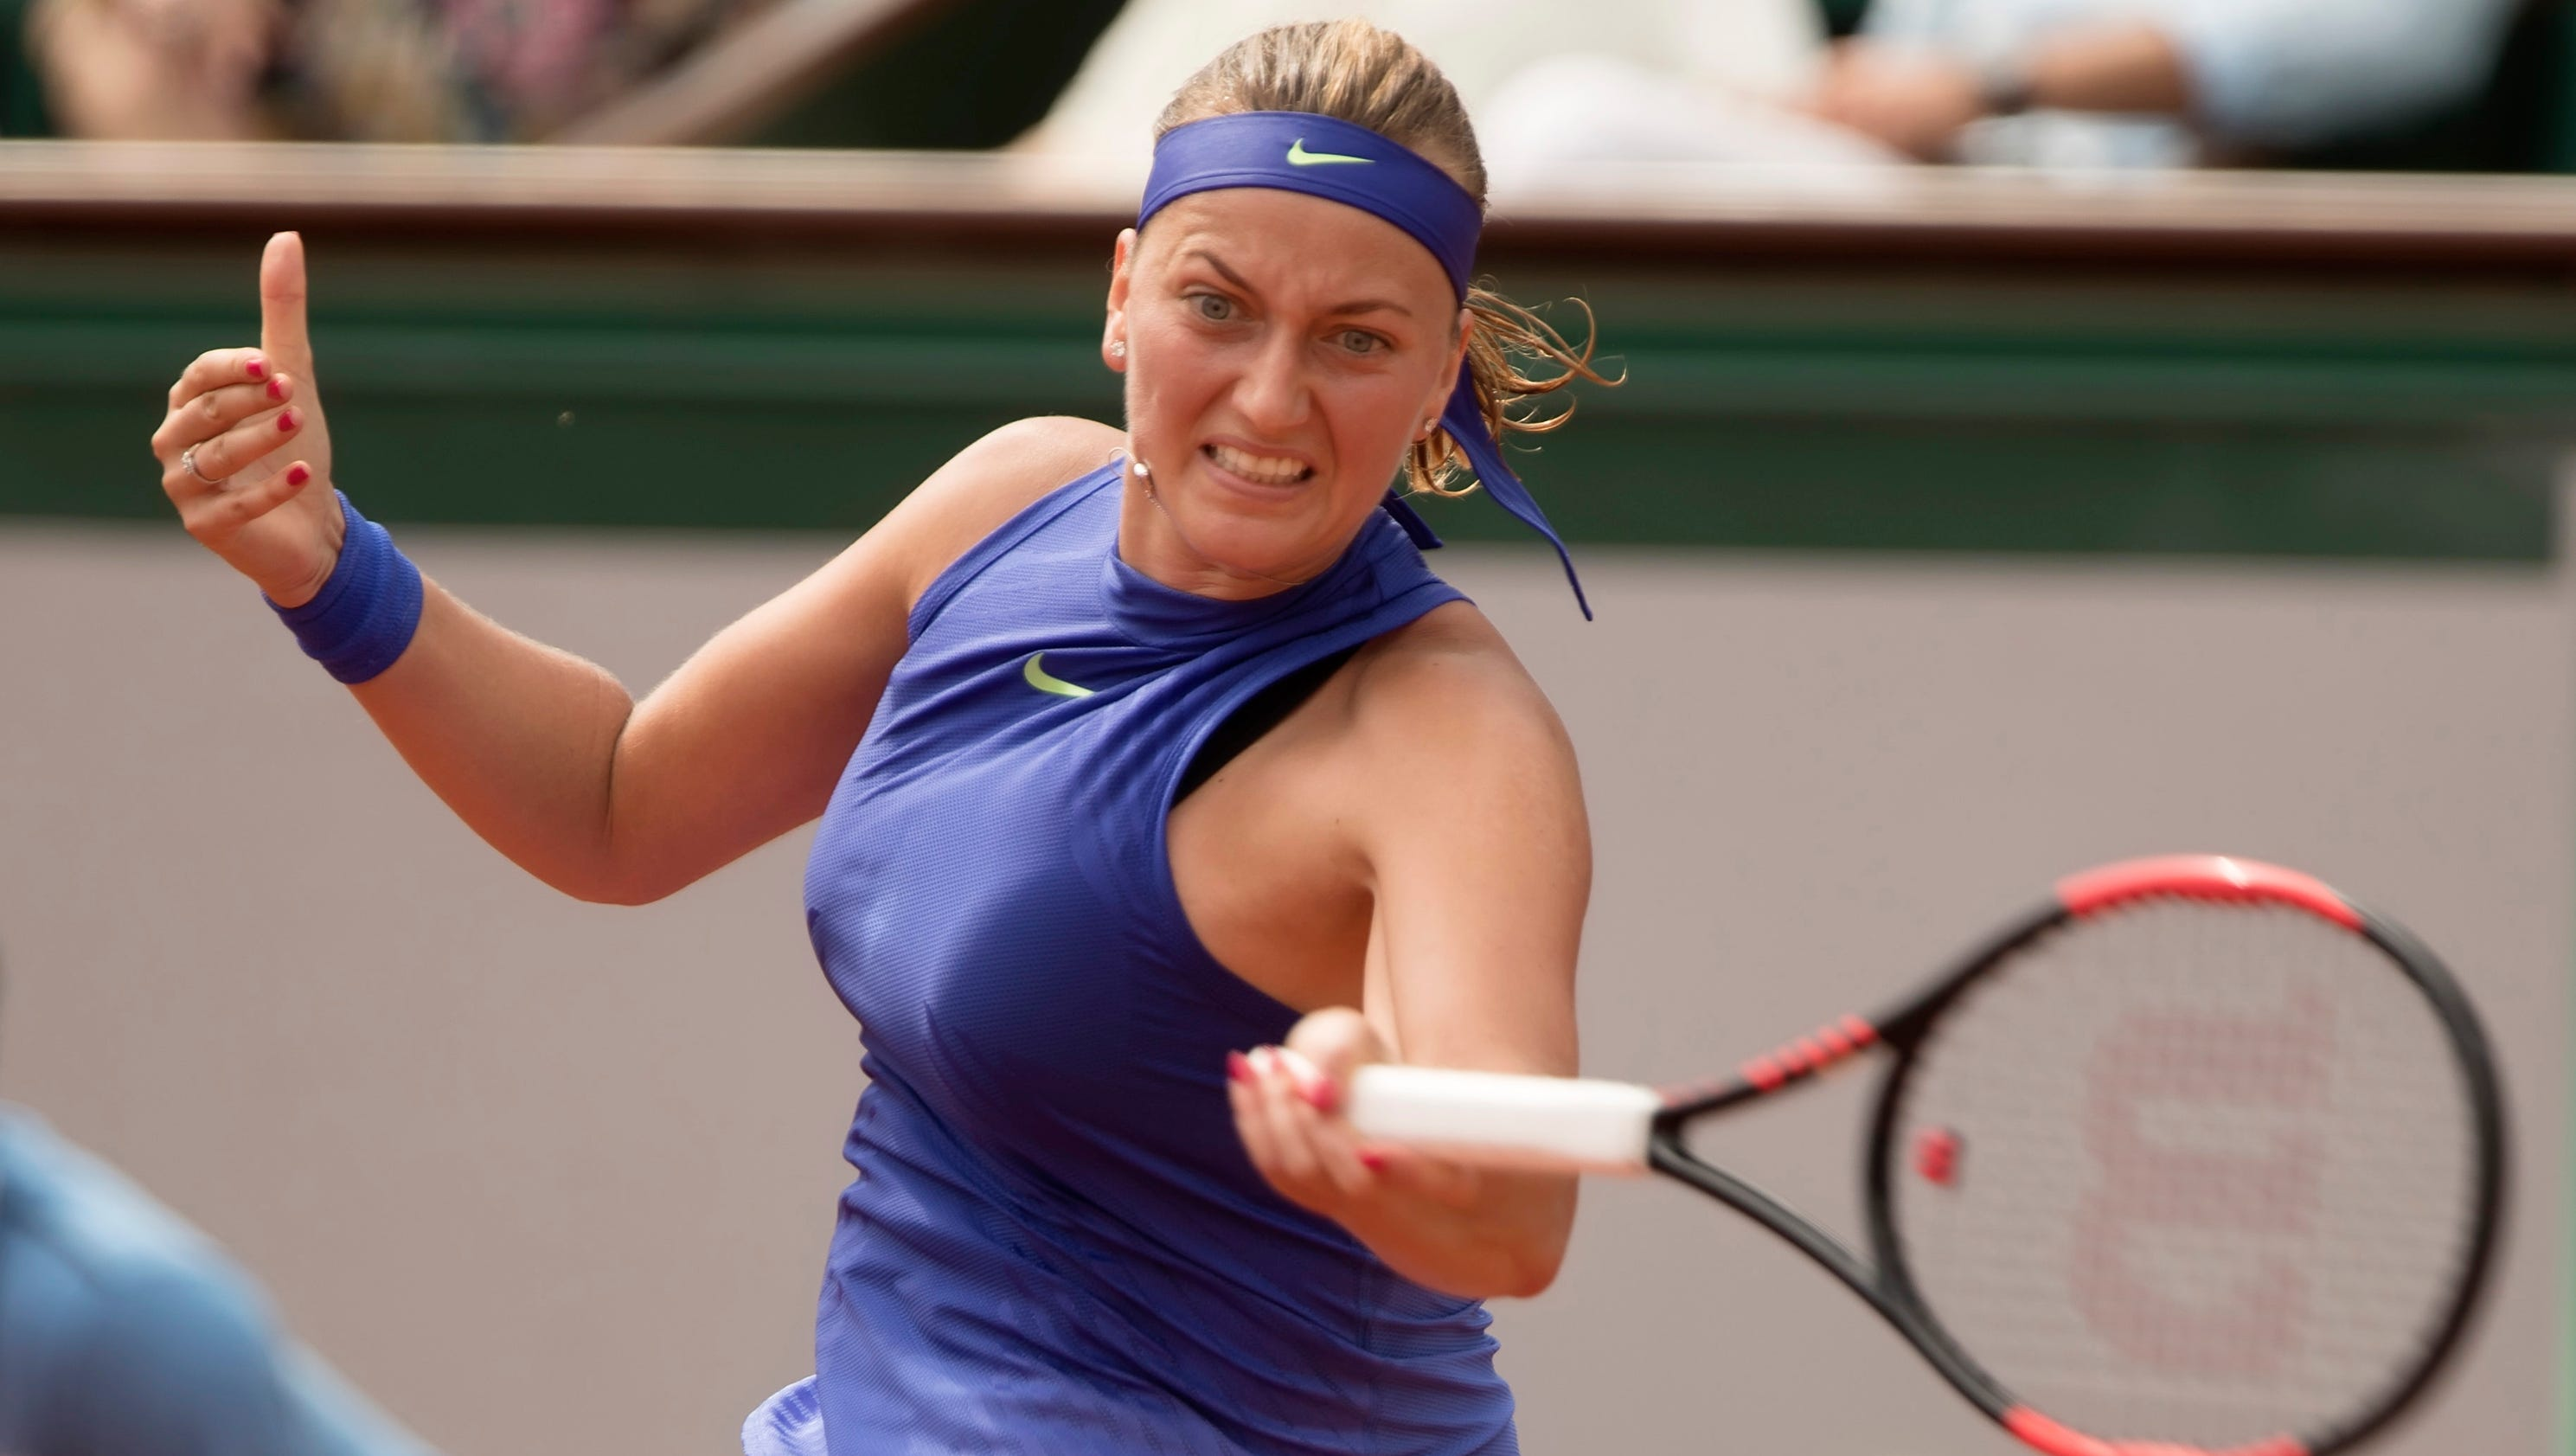 French Open: Petra Kvitova wins first match after return from injury